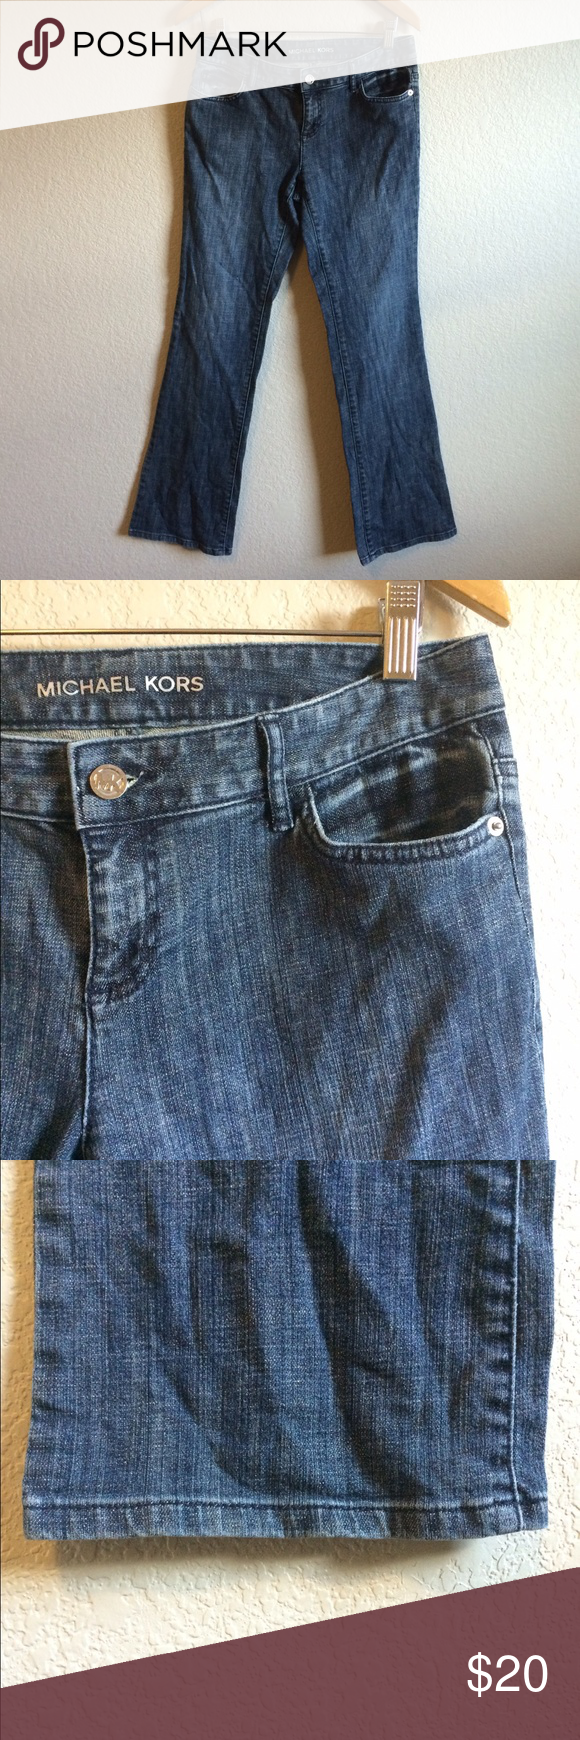 SALE Michael Kors Jeans These jeans with brown trim on the back pockets are in great condition. The slightest bit of wear to the bottom hems but no fraying.. Coloring as shown. Michael Kors Jeans Boot Cut